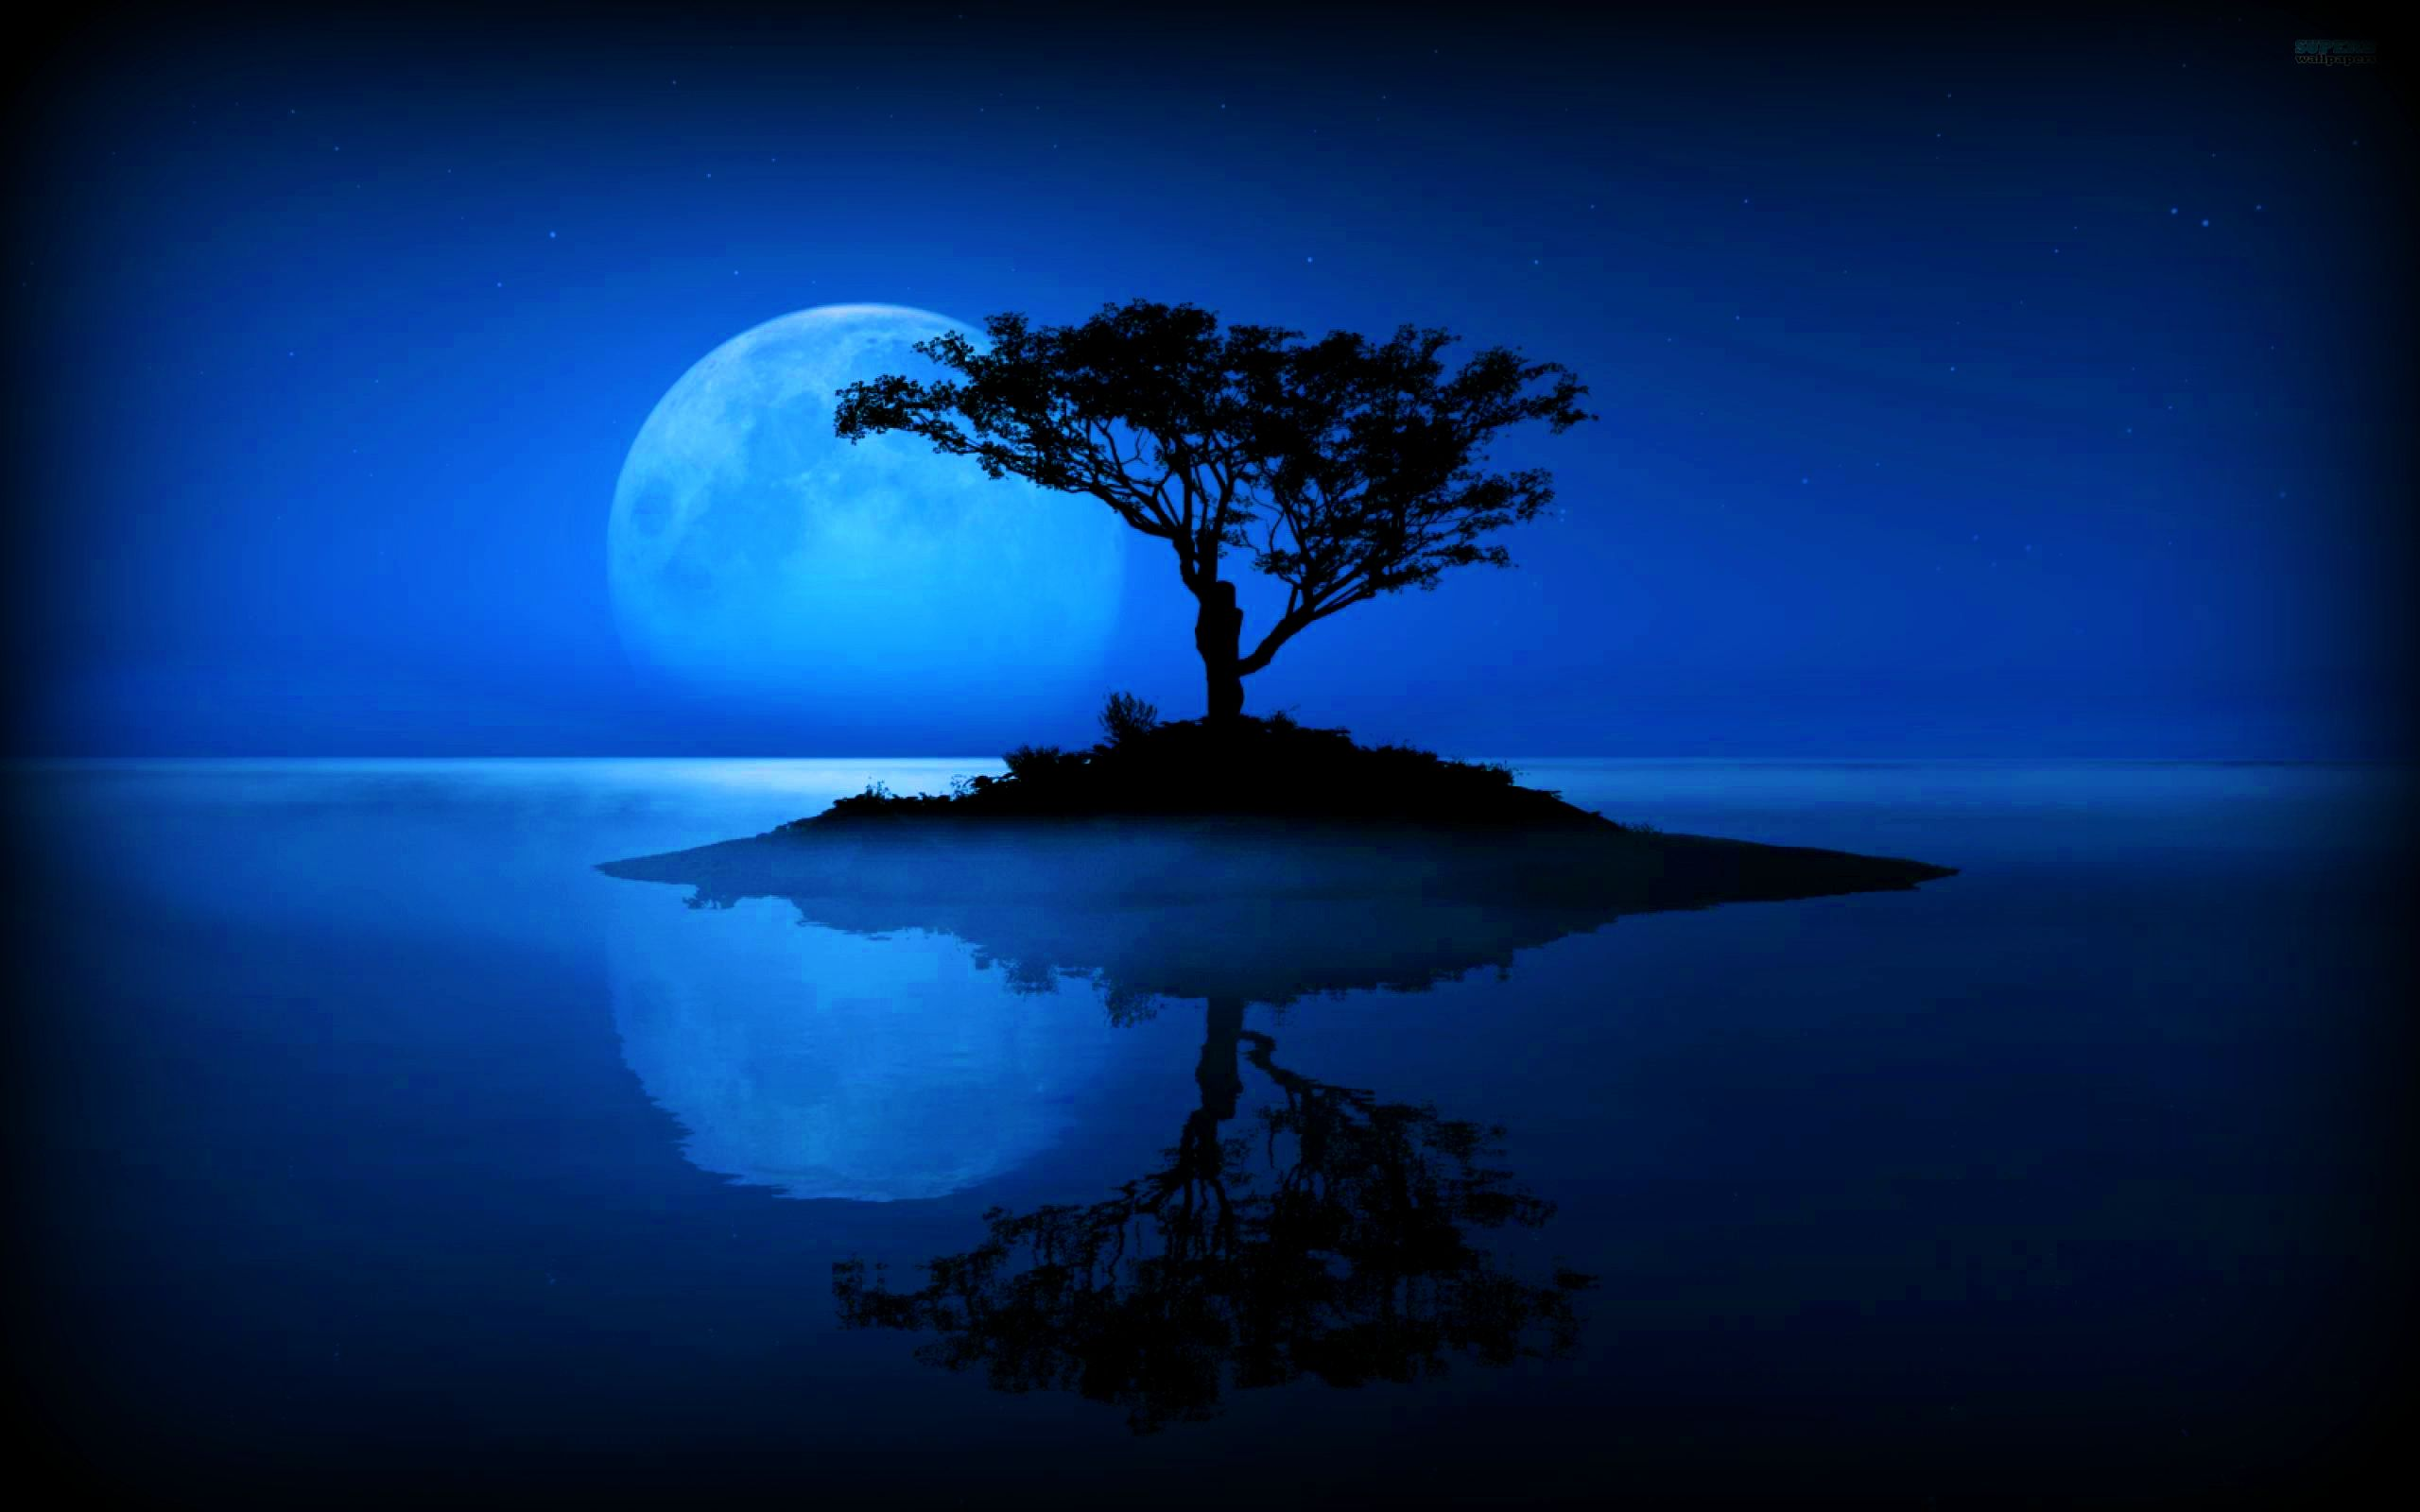 Moon On The Water Wallpapers Hd Free 246850 Beautiful Moon Wallpaper Photo Gallery Beautiful Nature Hd wallpaper sea moon water reflection